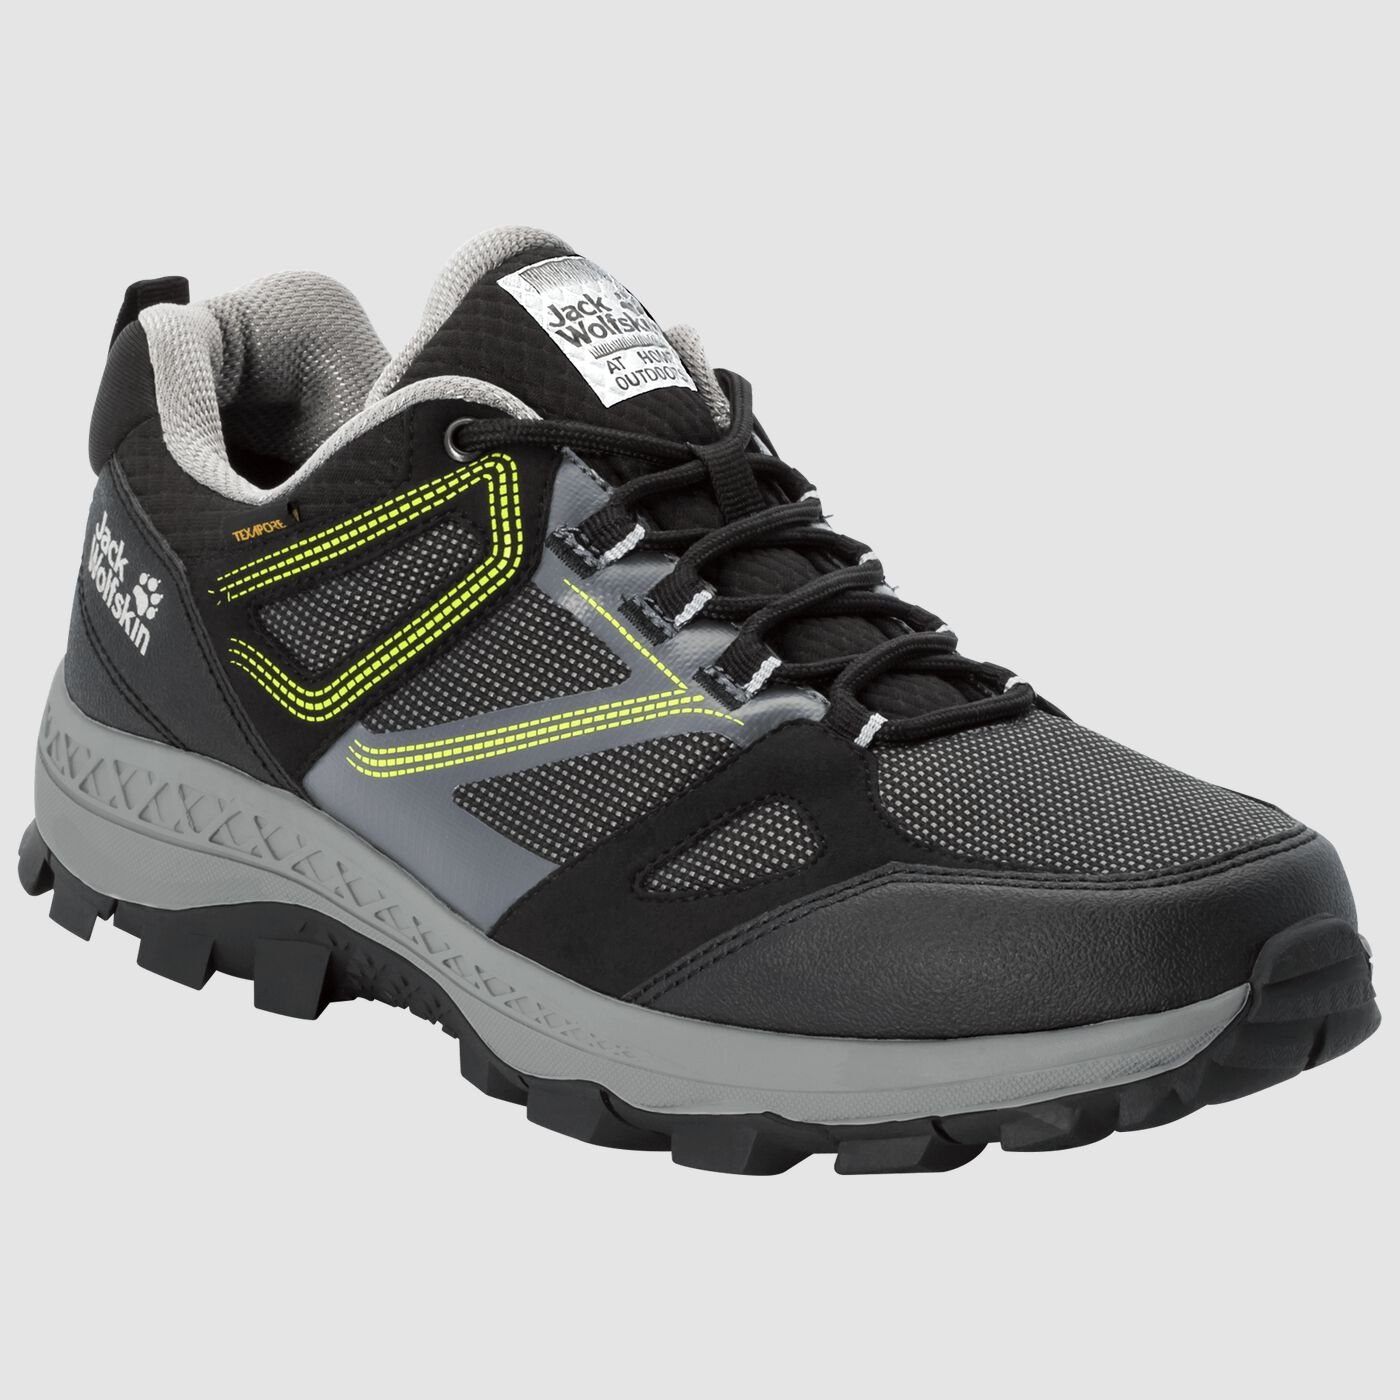 DOWNHILL TEXAPORE LOW M